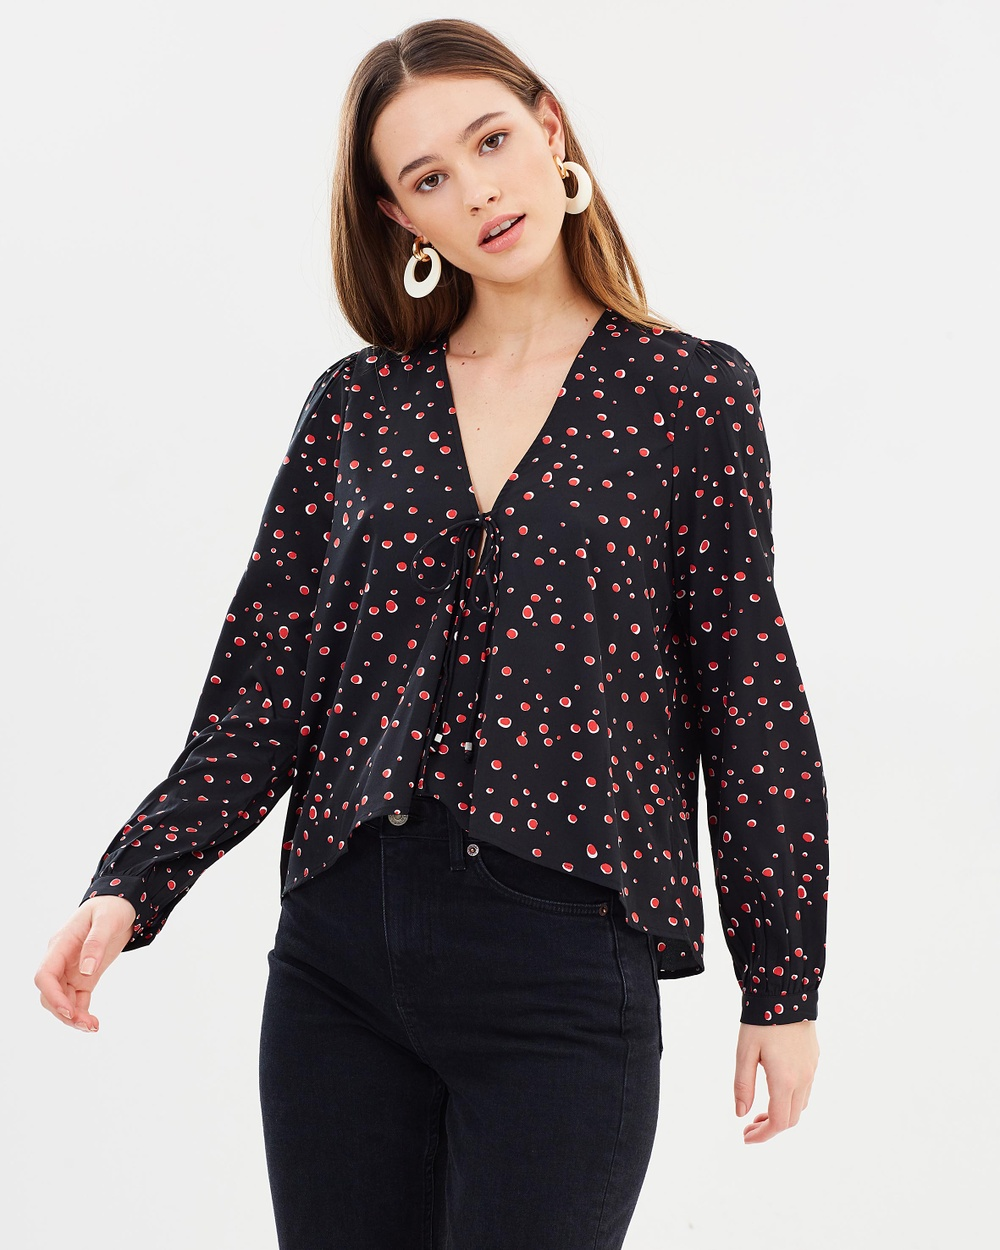 Vero Moda Henna Dot LS Top Cropped tops Black Henna Dot LS Top